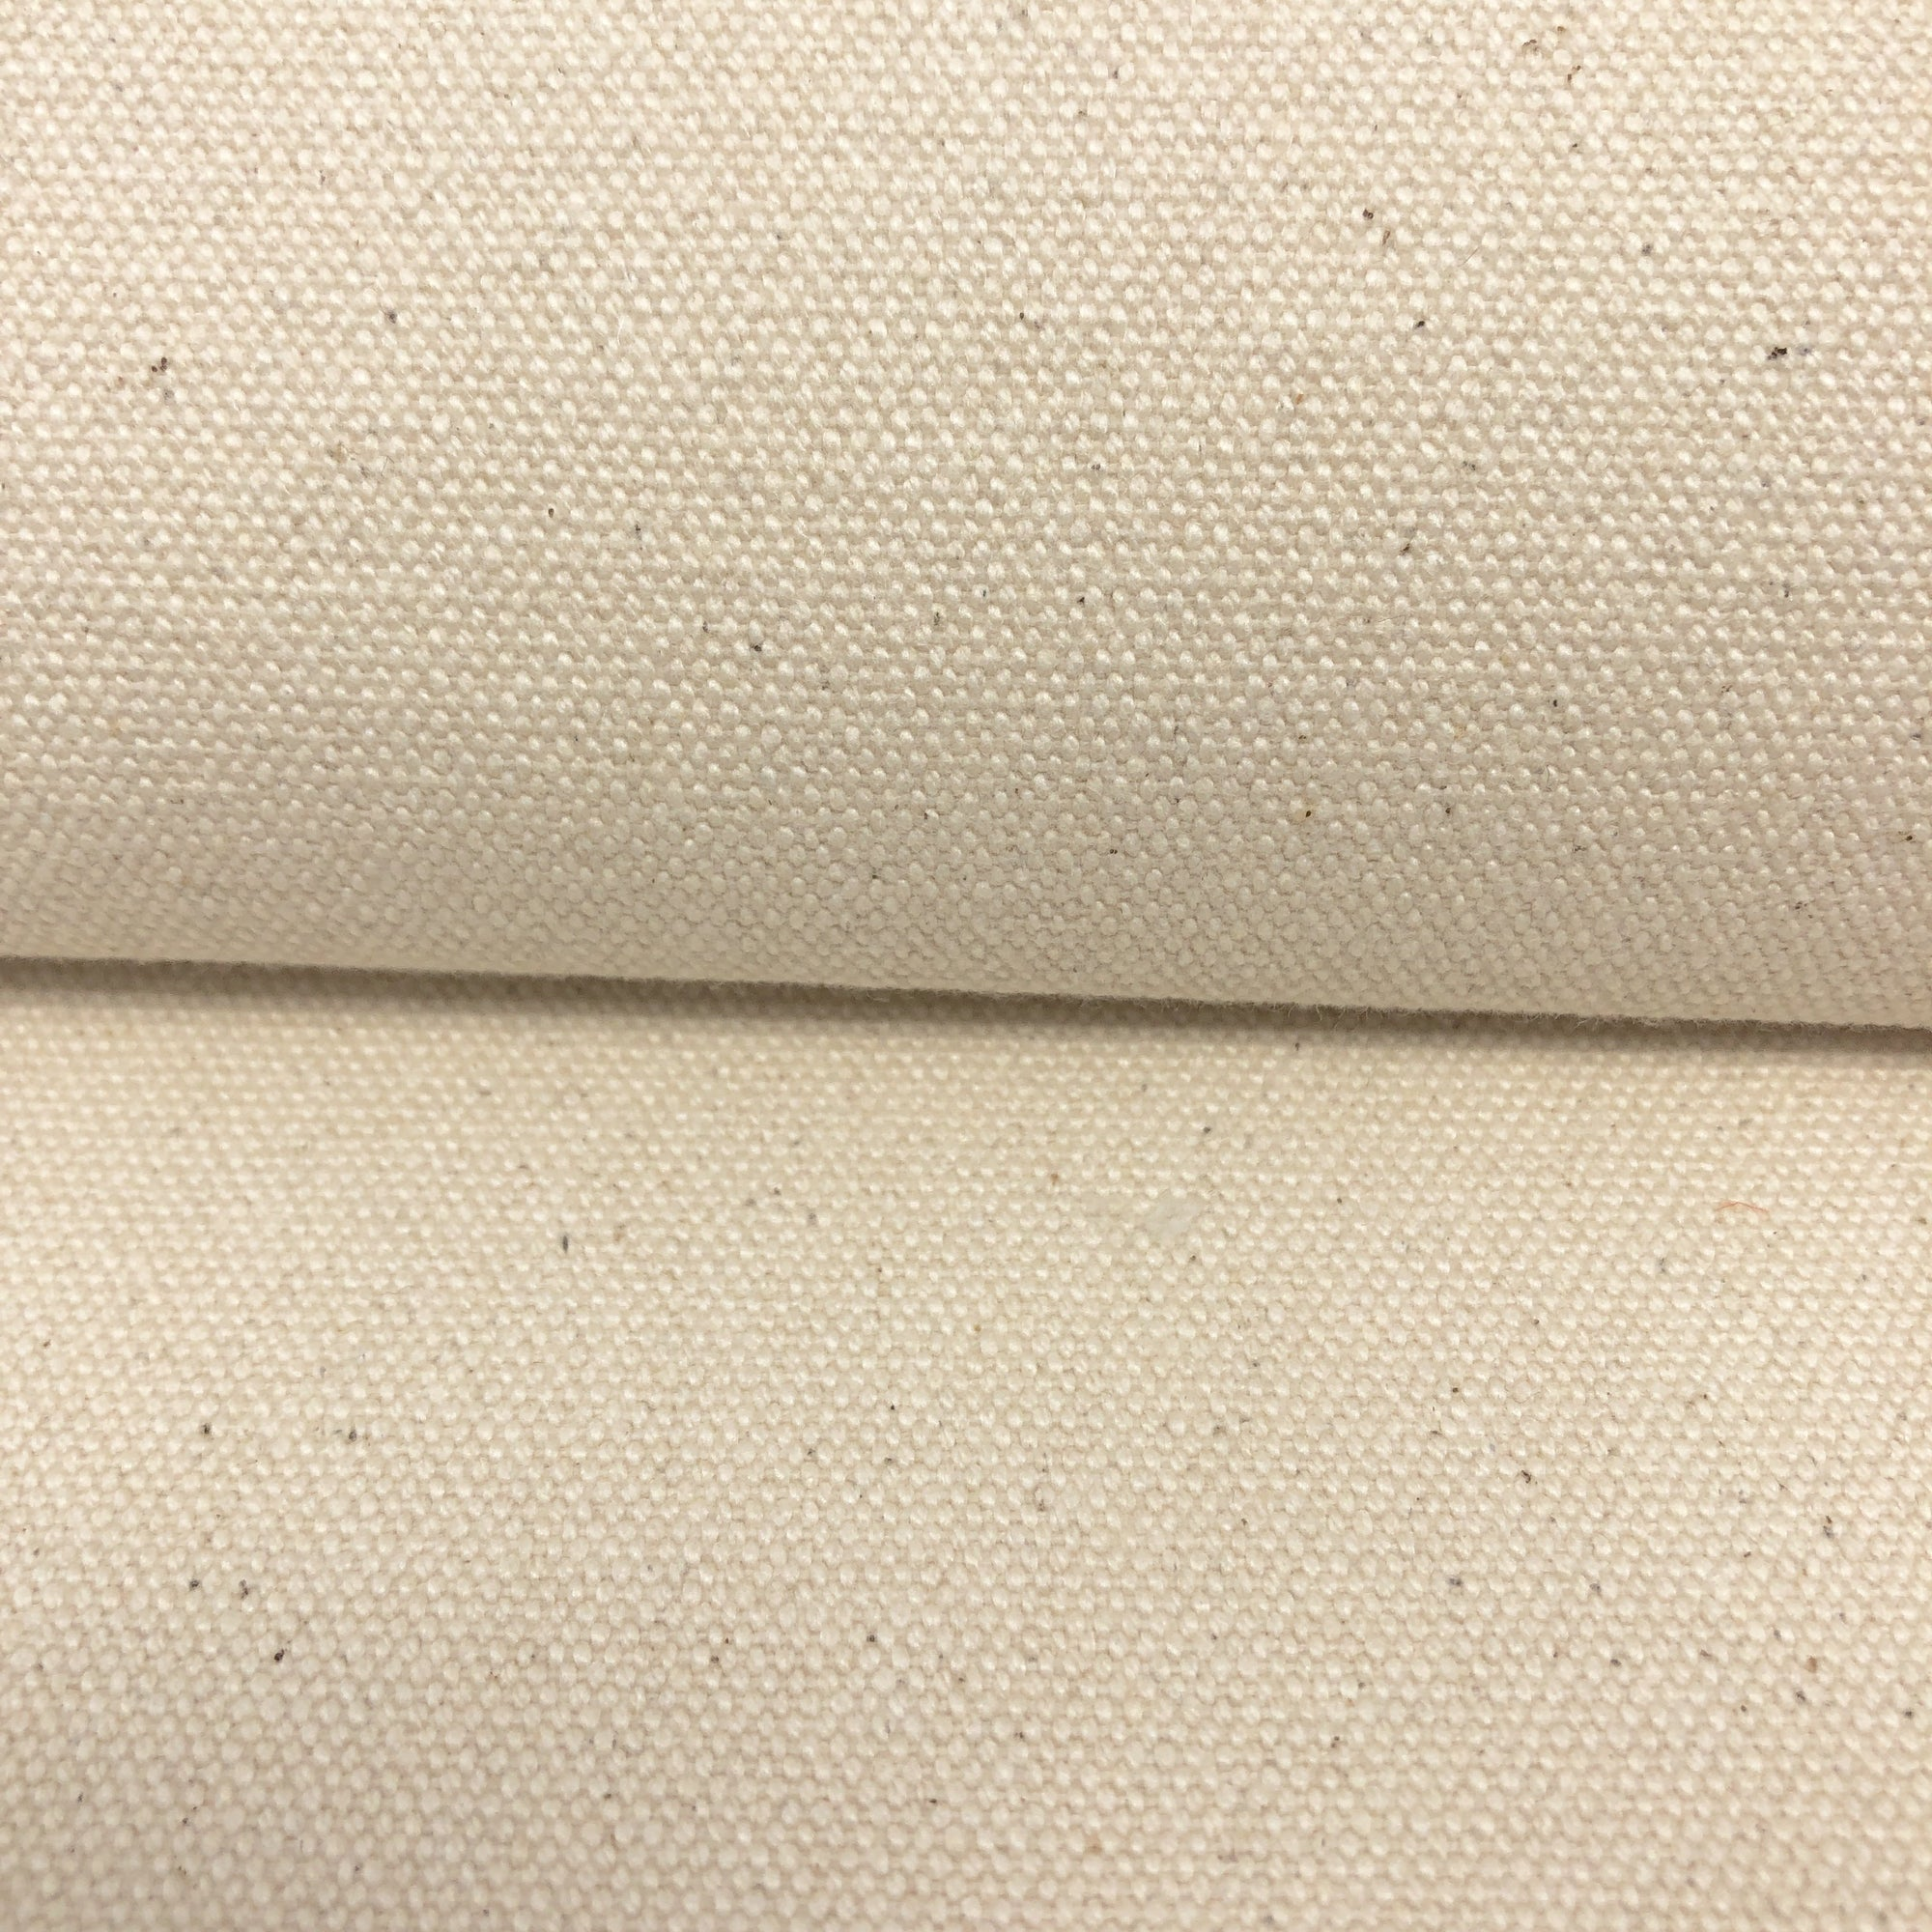 #10 Natural Cotton Duck Canvas (15 oz) Fabric